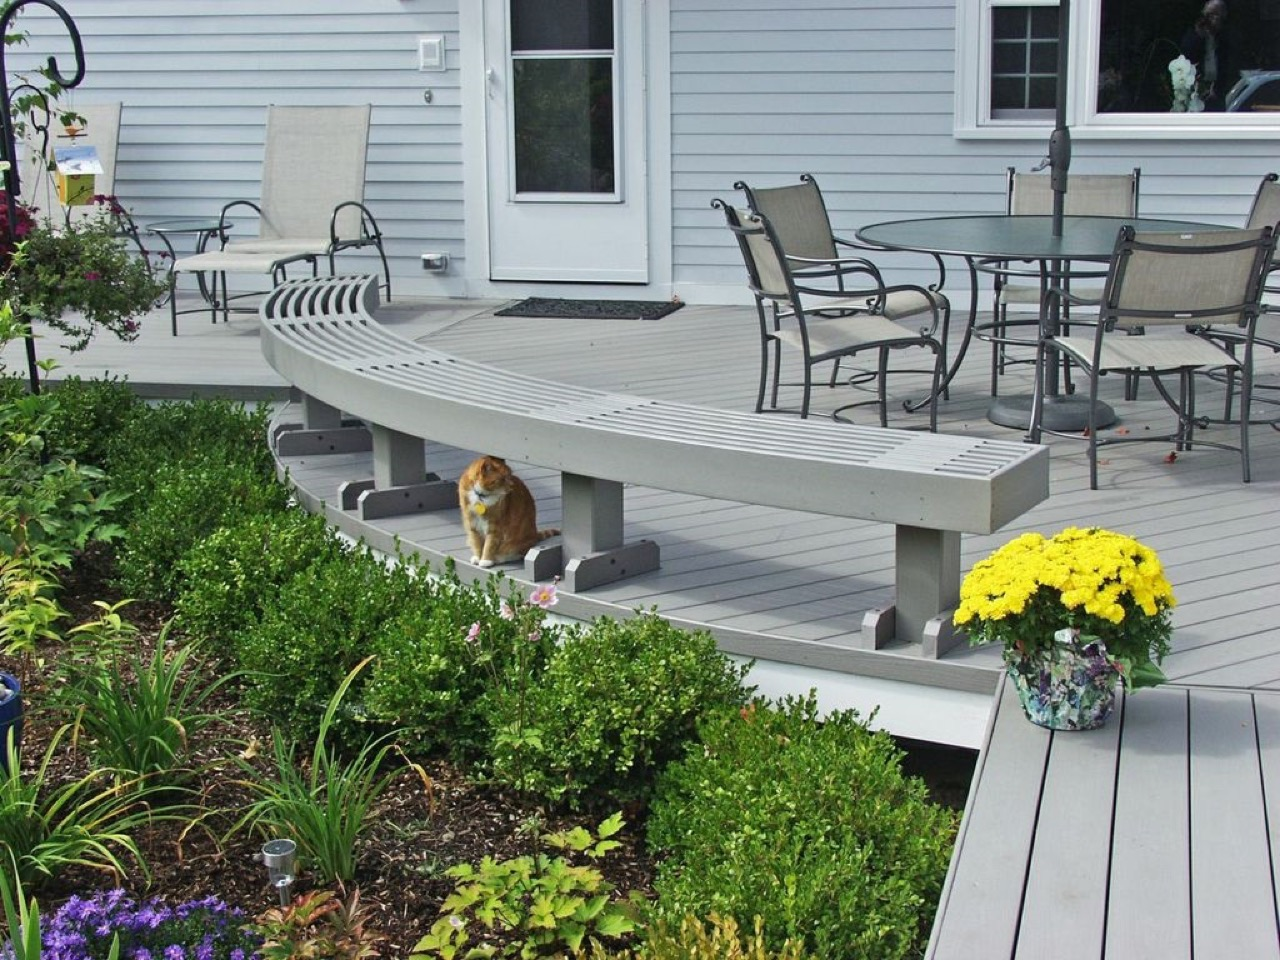 Summer Outdoor Living Spaces: Ideas and Upgrades | St ...